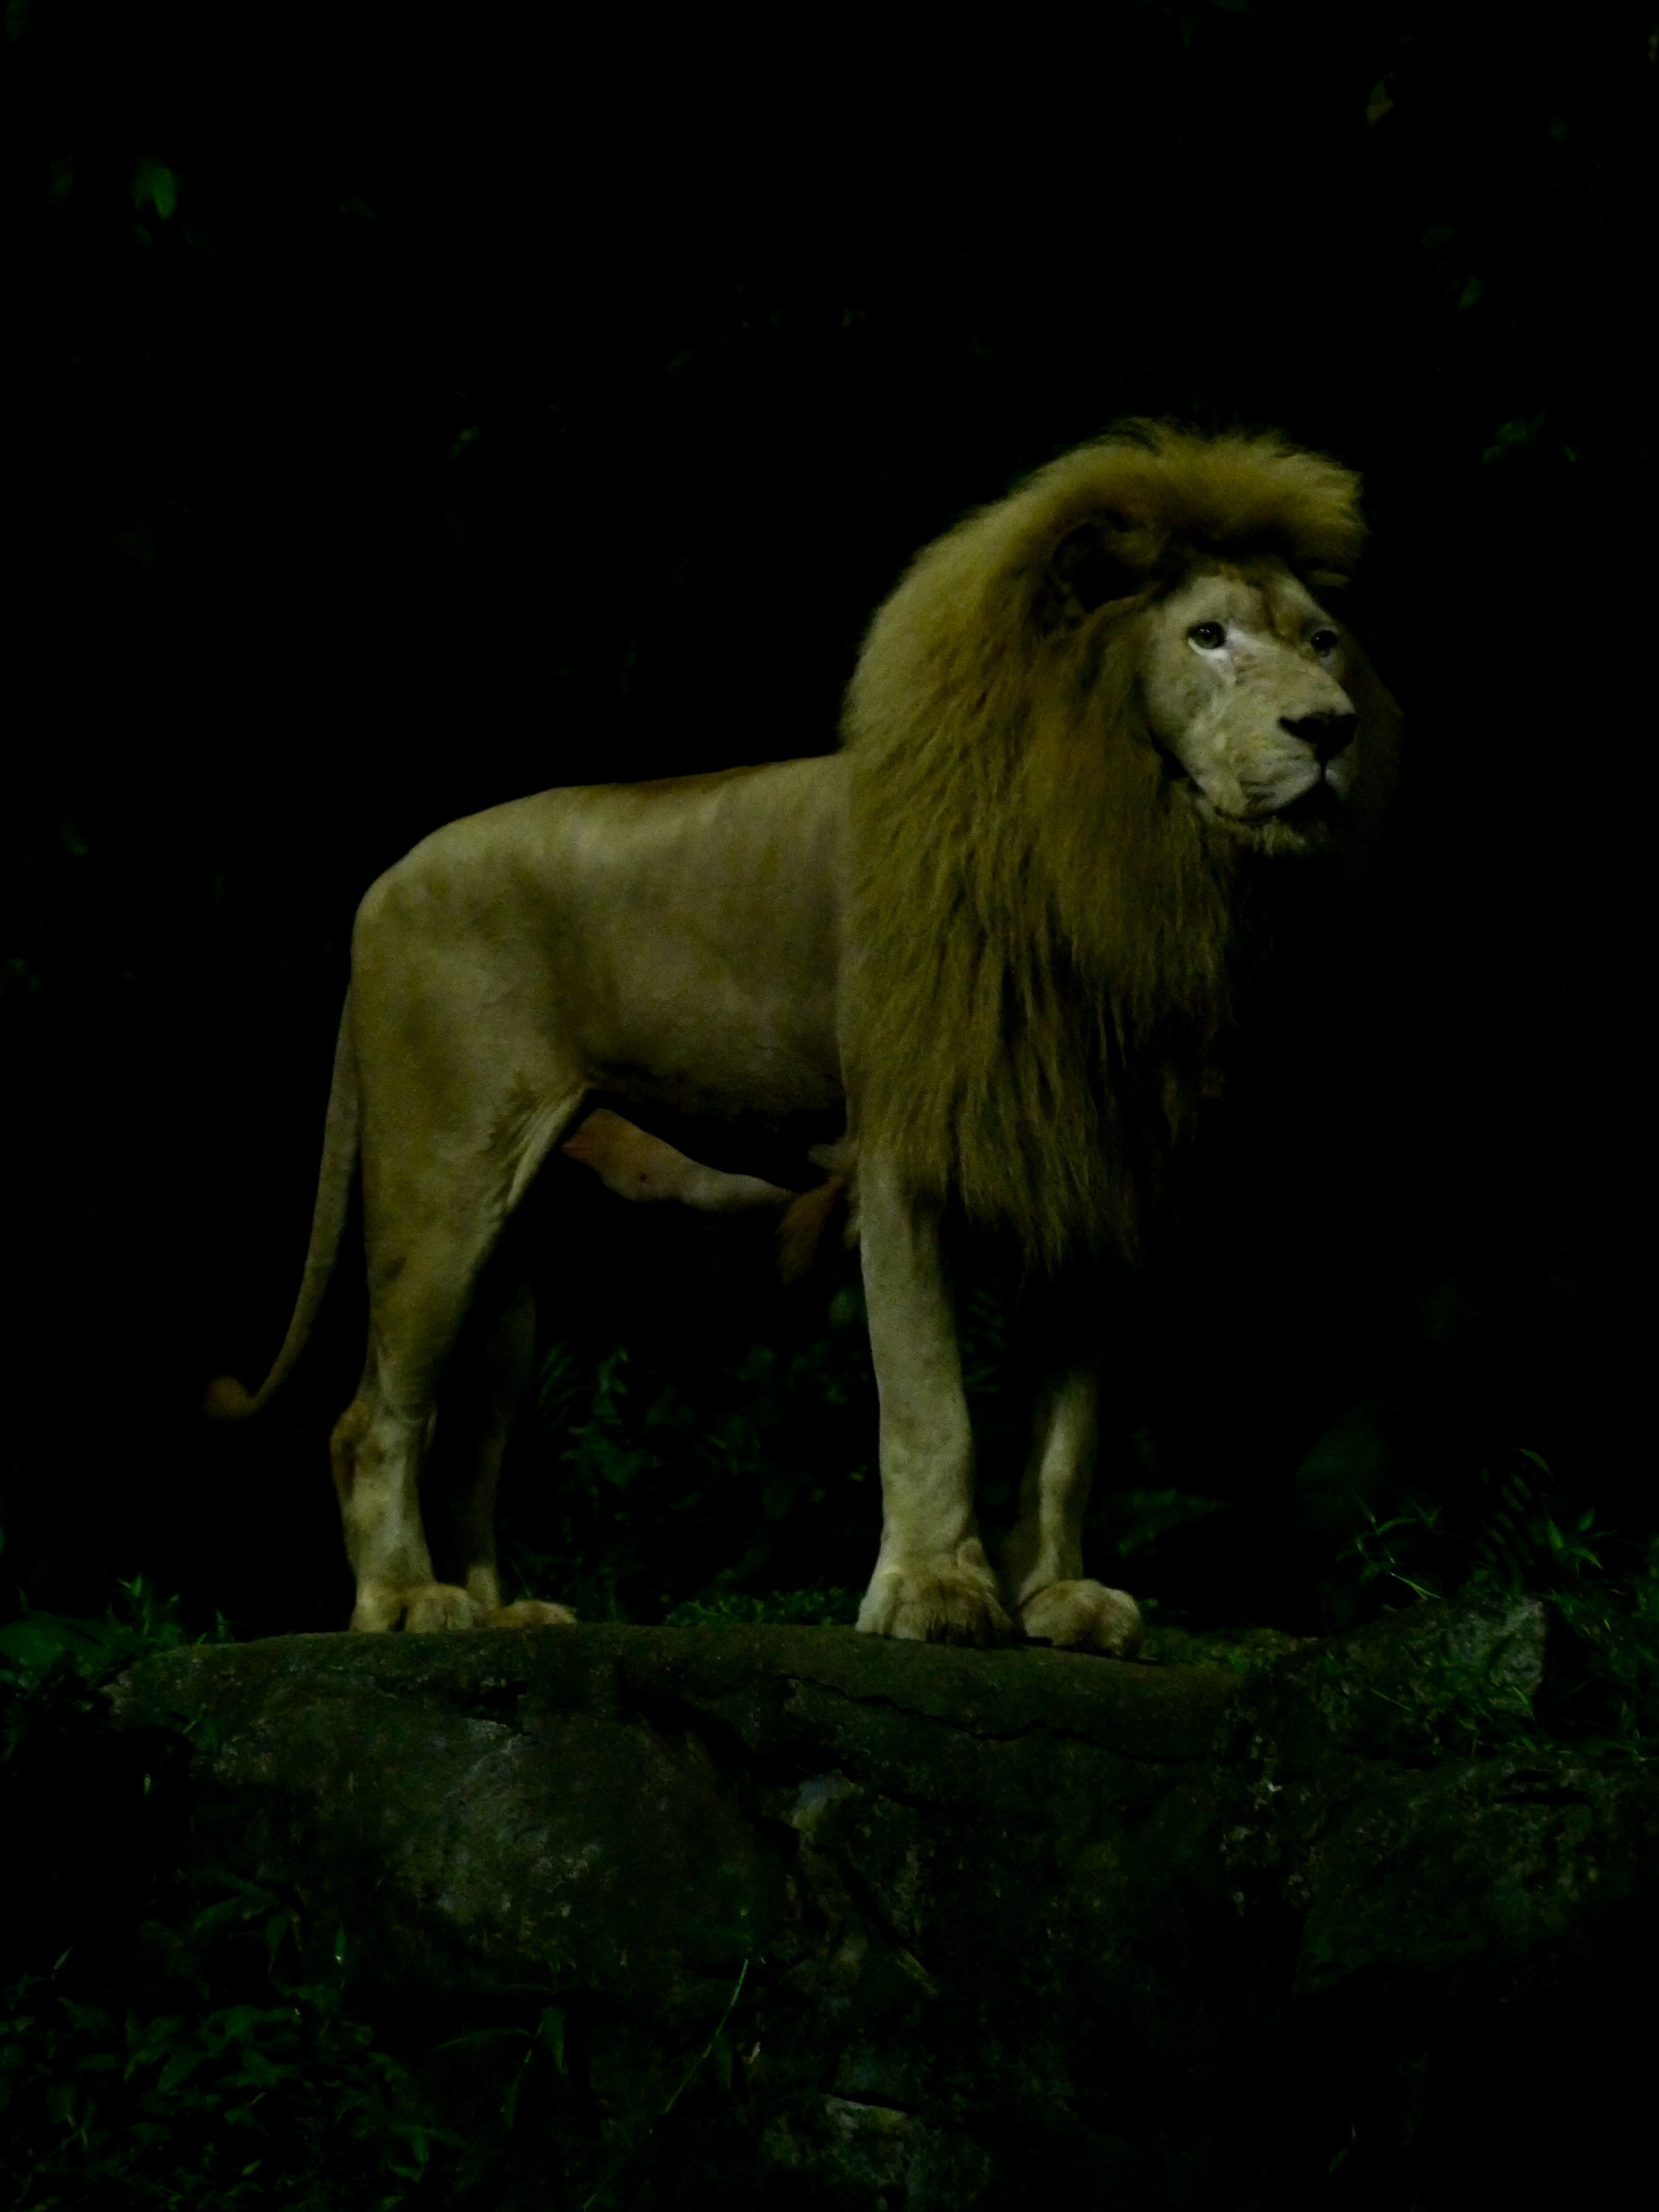 Lion, Singapore Night Zoo